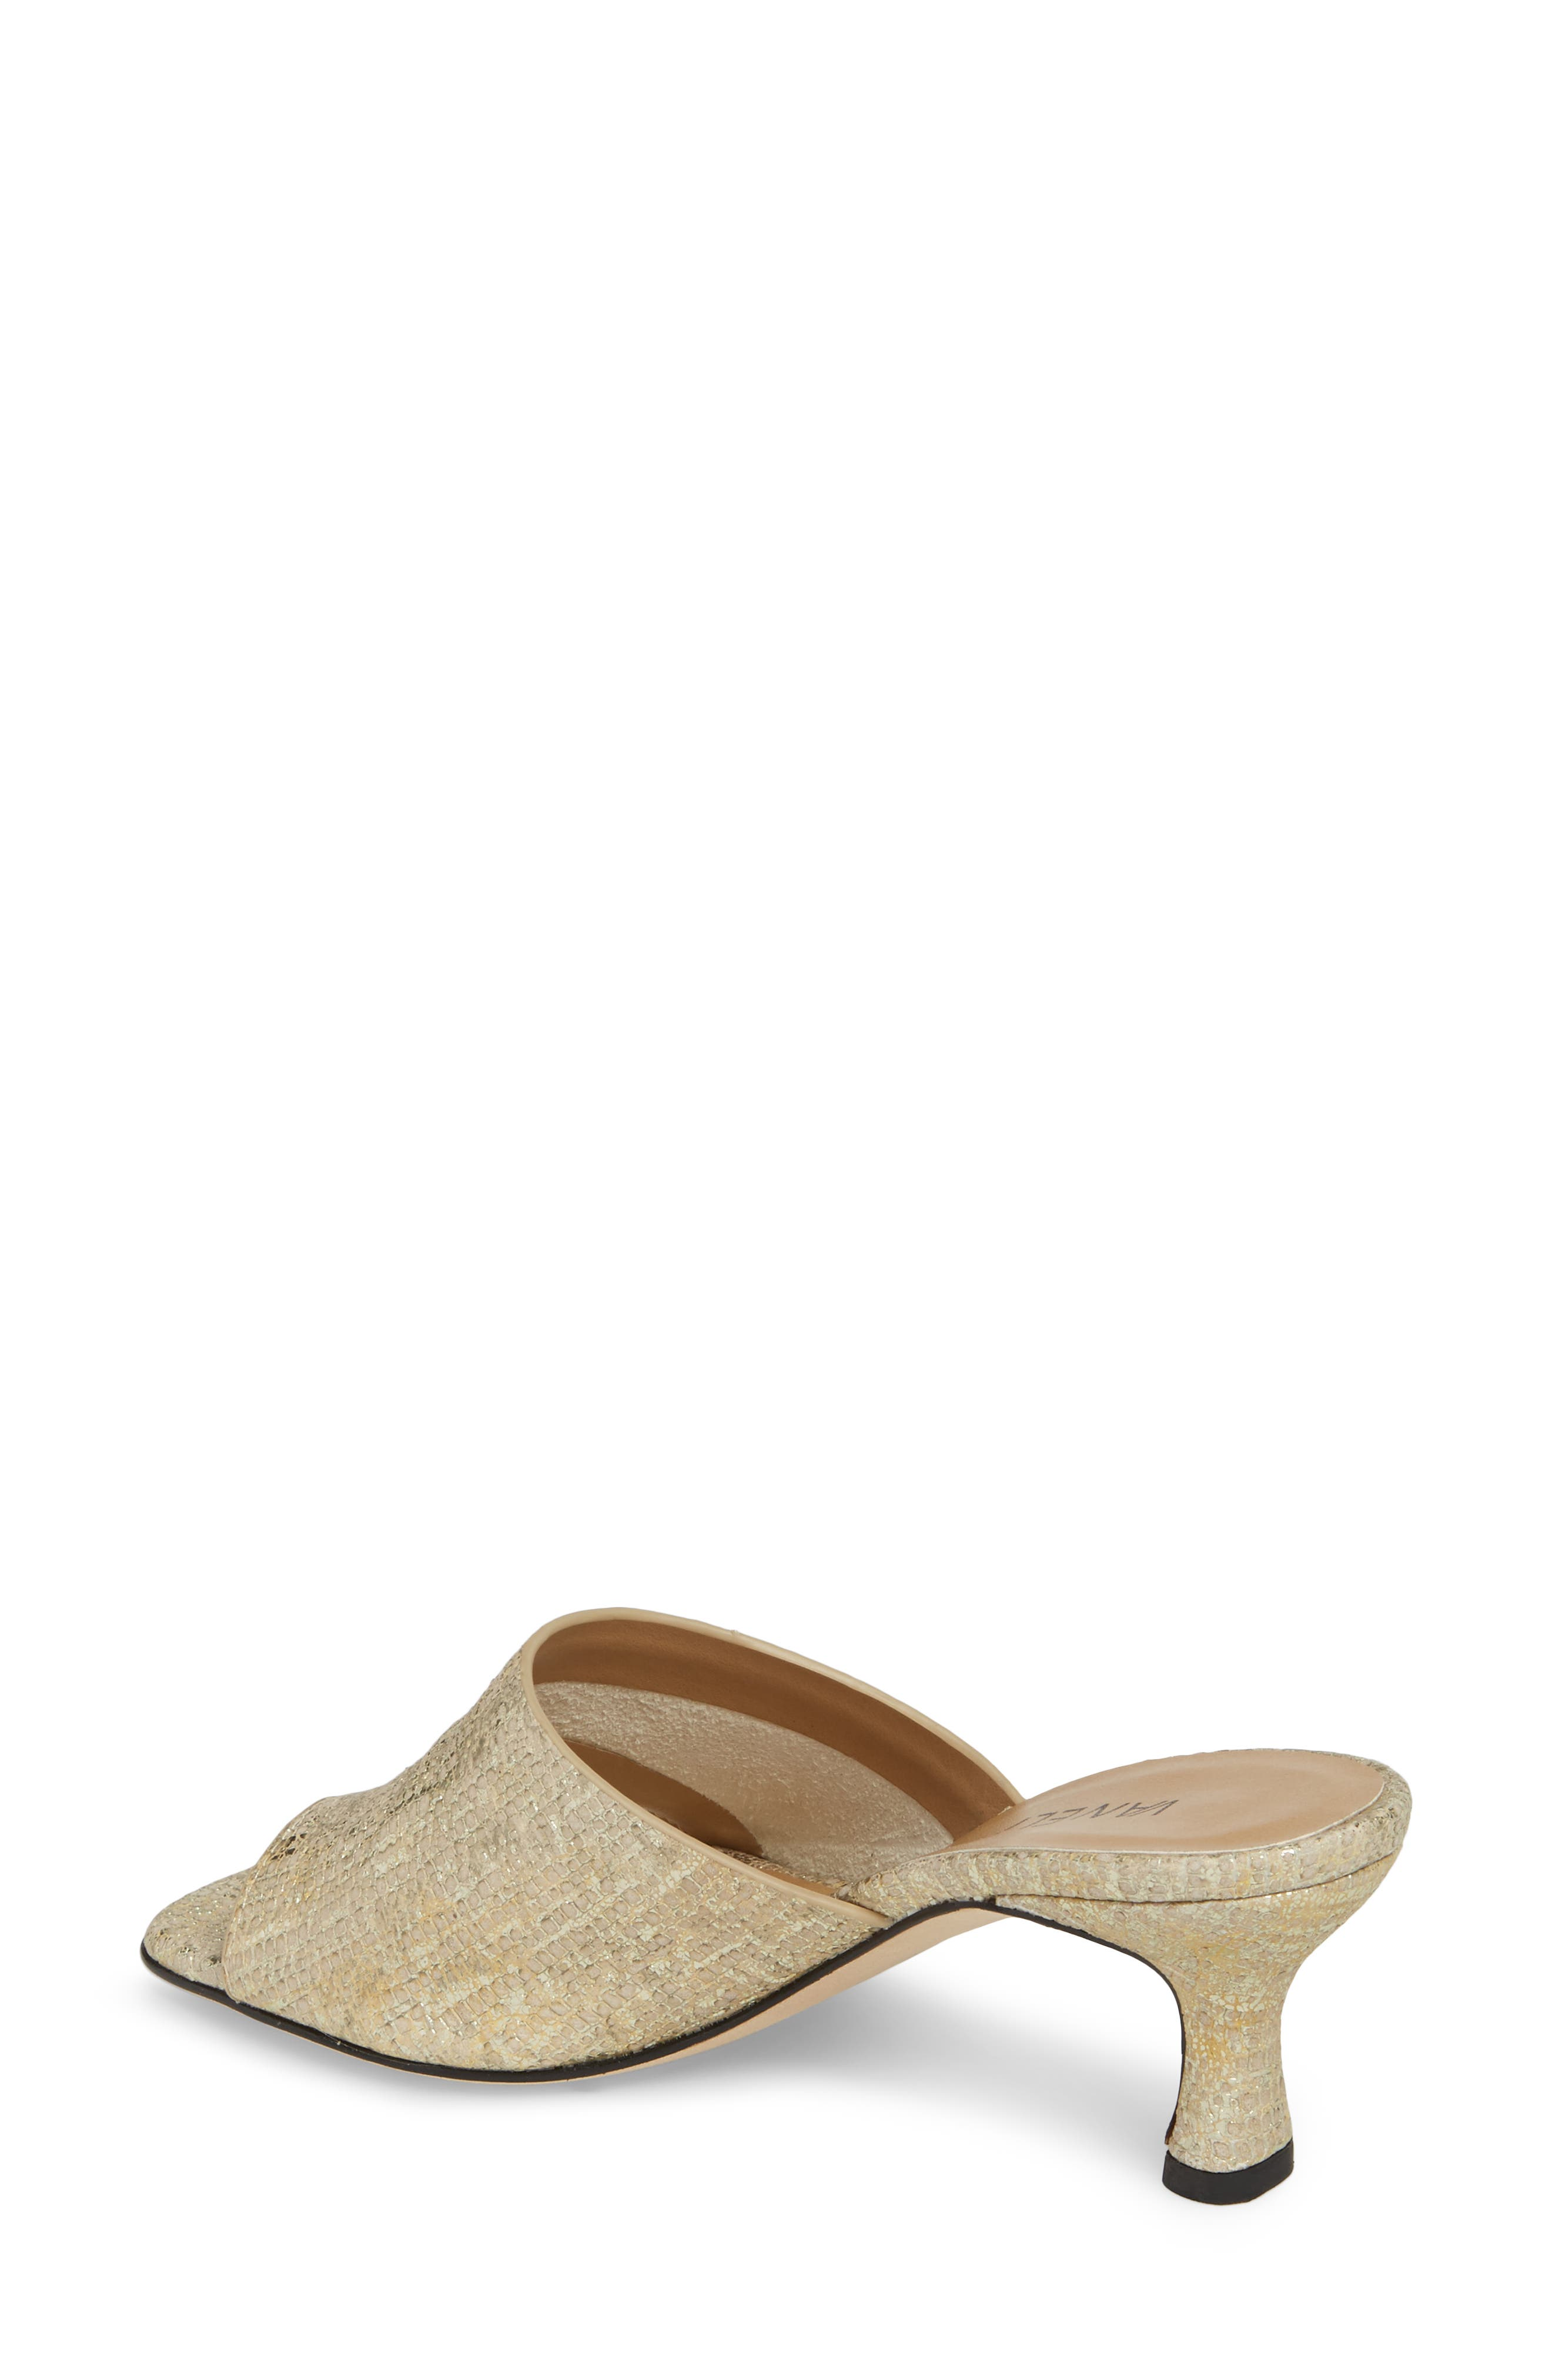 'Melea' Slide Sandal,                             Alternate thumbnail 2, color,                             250